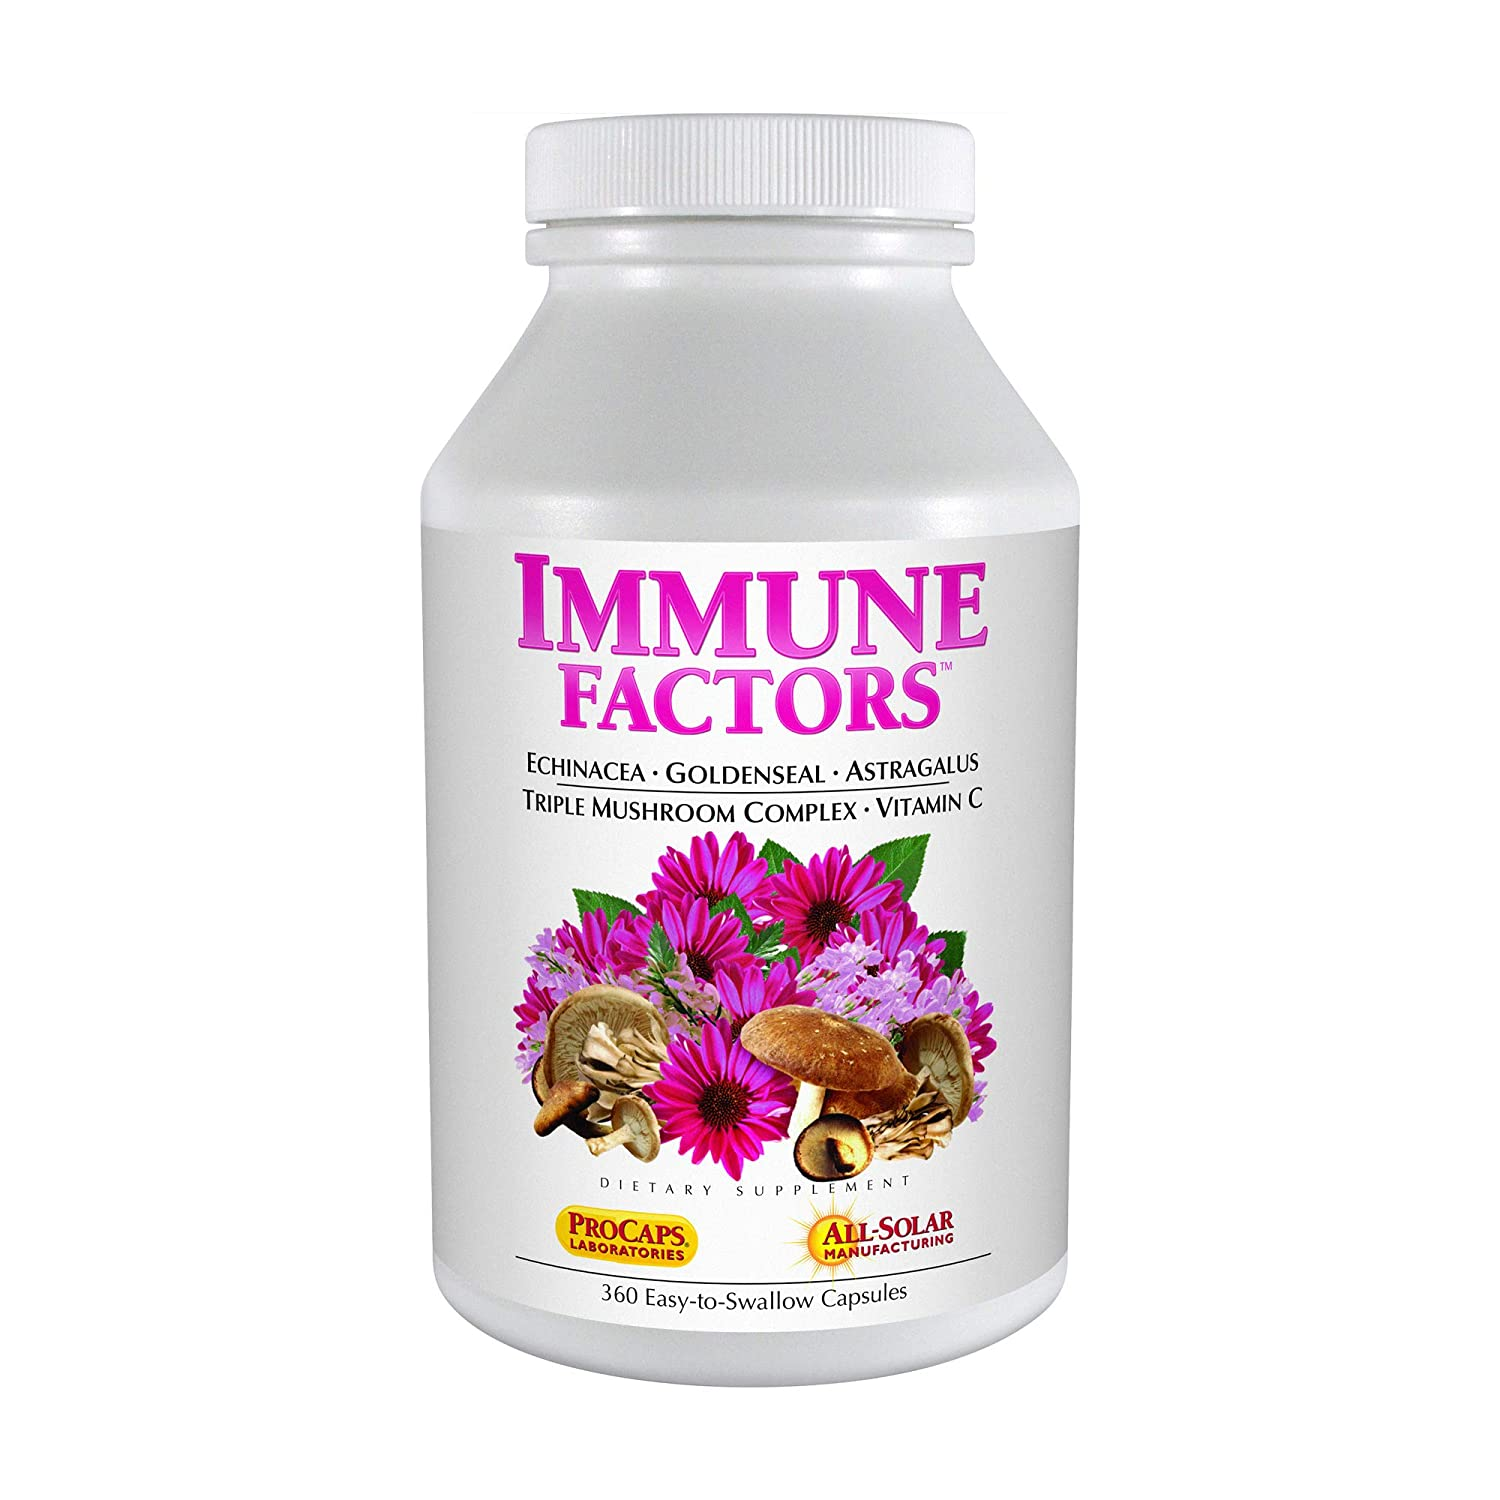 Andrew Lessman Immune Factors 360 Capsules – Echinacea, Goldenseal, Vitamin C, Astragalus, Supports and Promotes Immune System and Natural Defenses, No Additives. Small Easy to Swallow Capsules